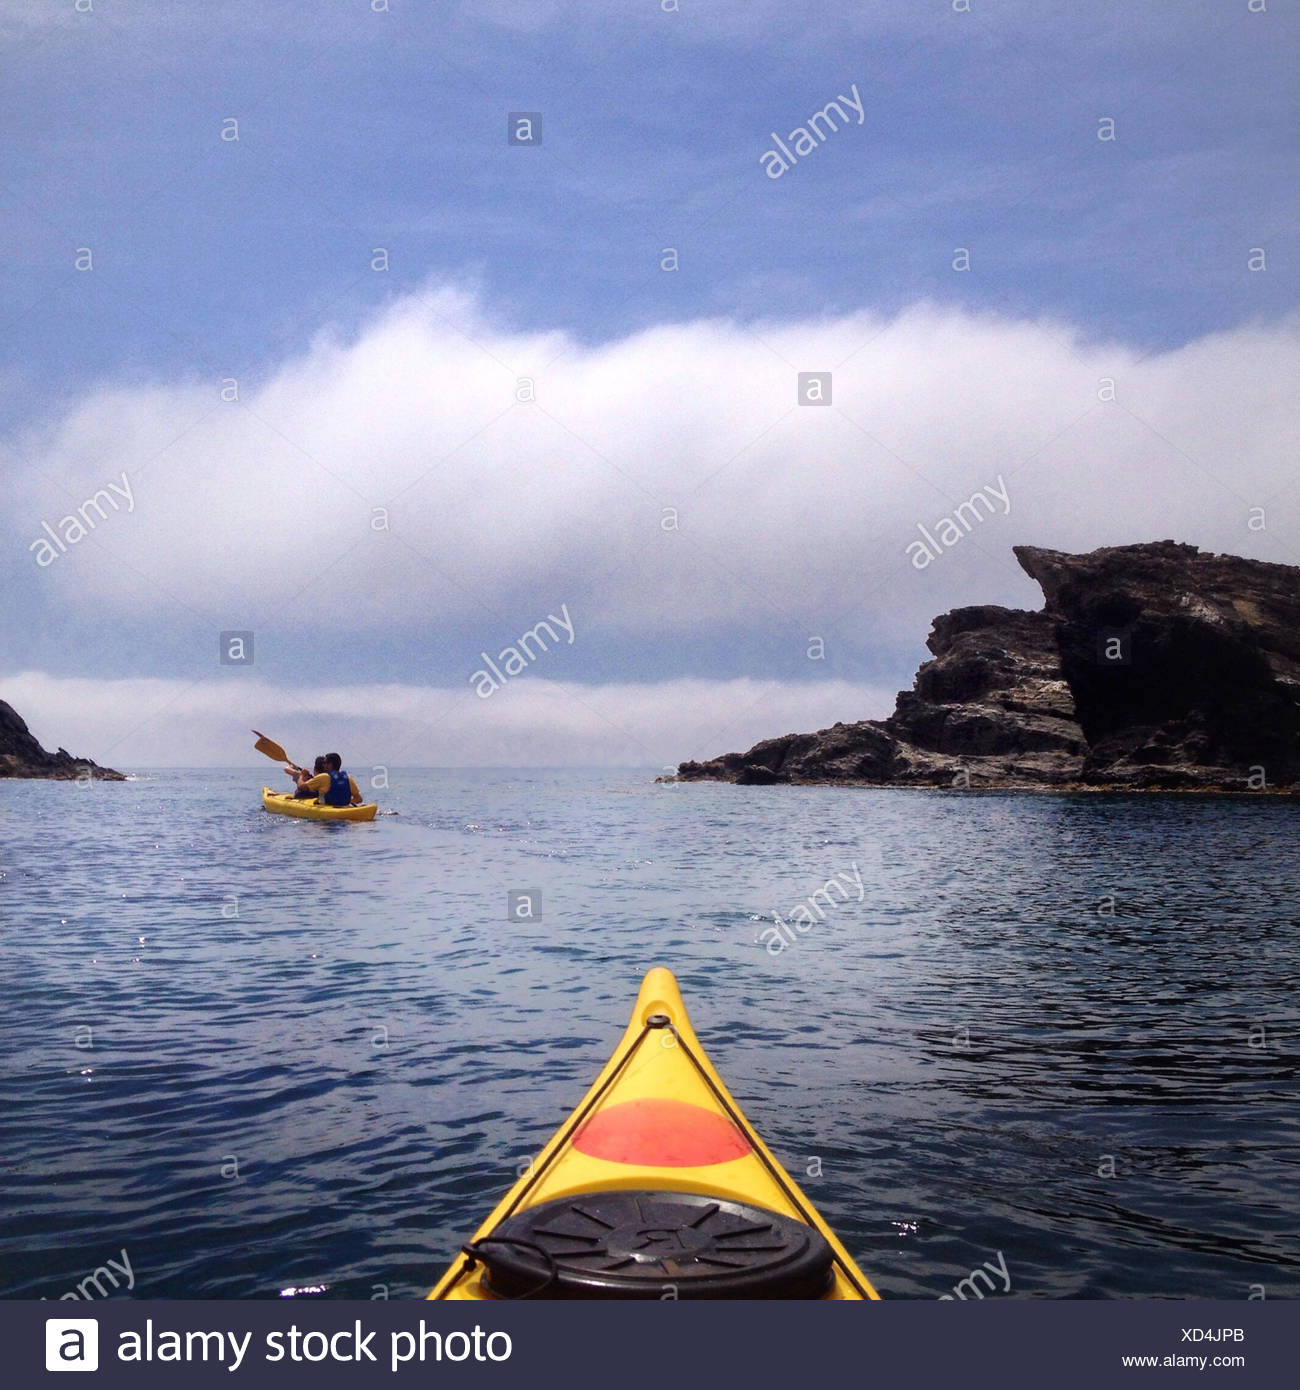 Spain, Costa Brava, Kayaking among cliffs Stock Photo